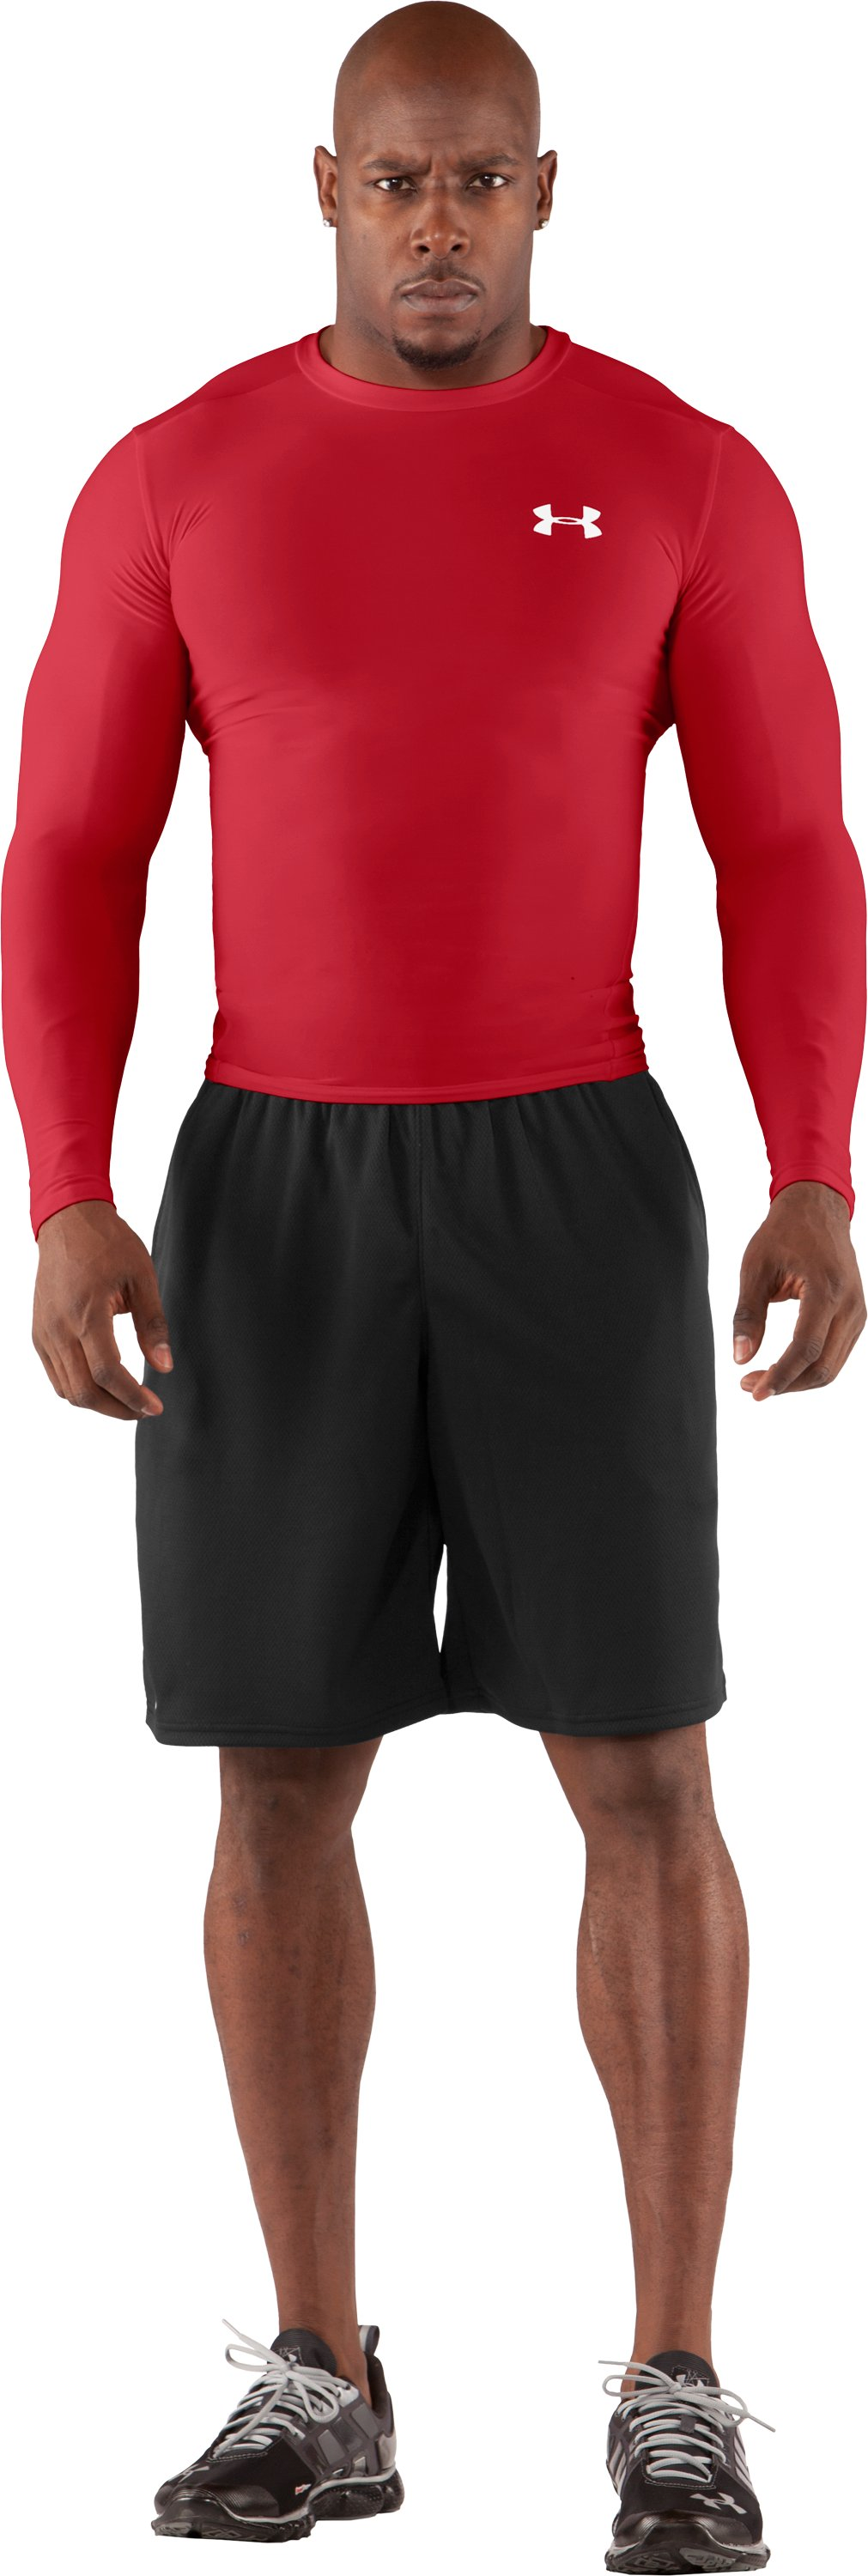 Men's HeatGear® Compression Long Sleeve T-Shirt, Red, Front